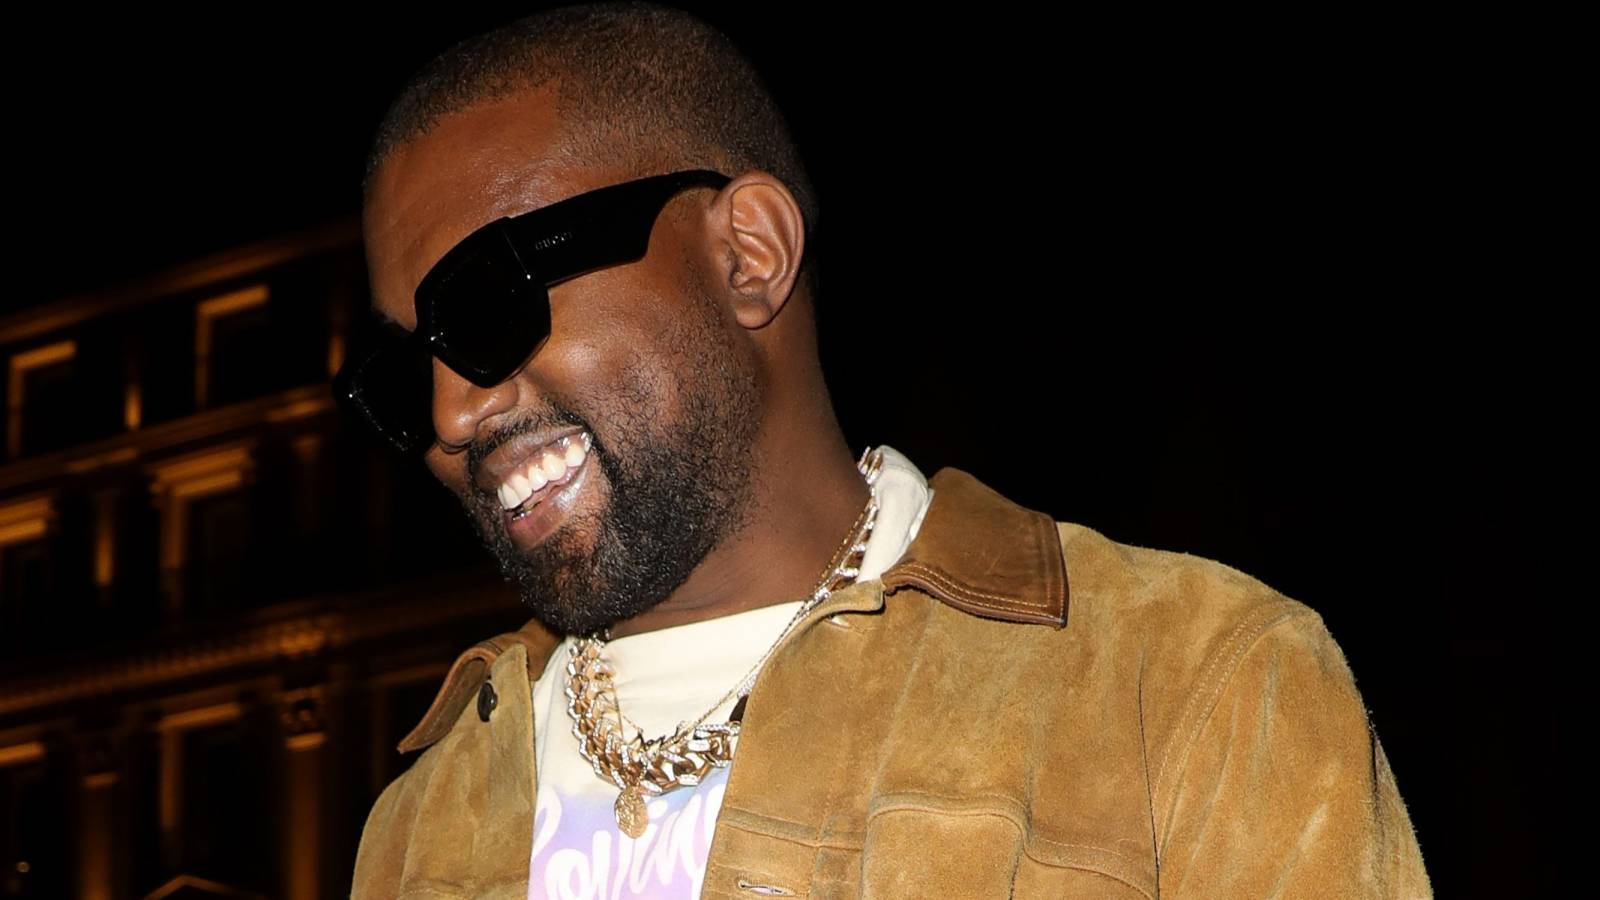 Kanye West Inspires Chicago Residents With Gap Mural